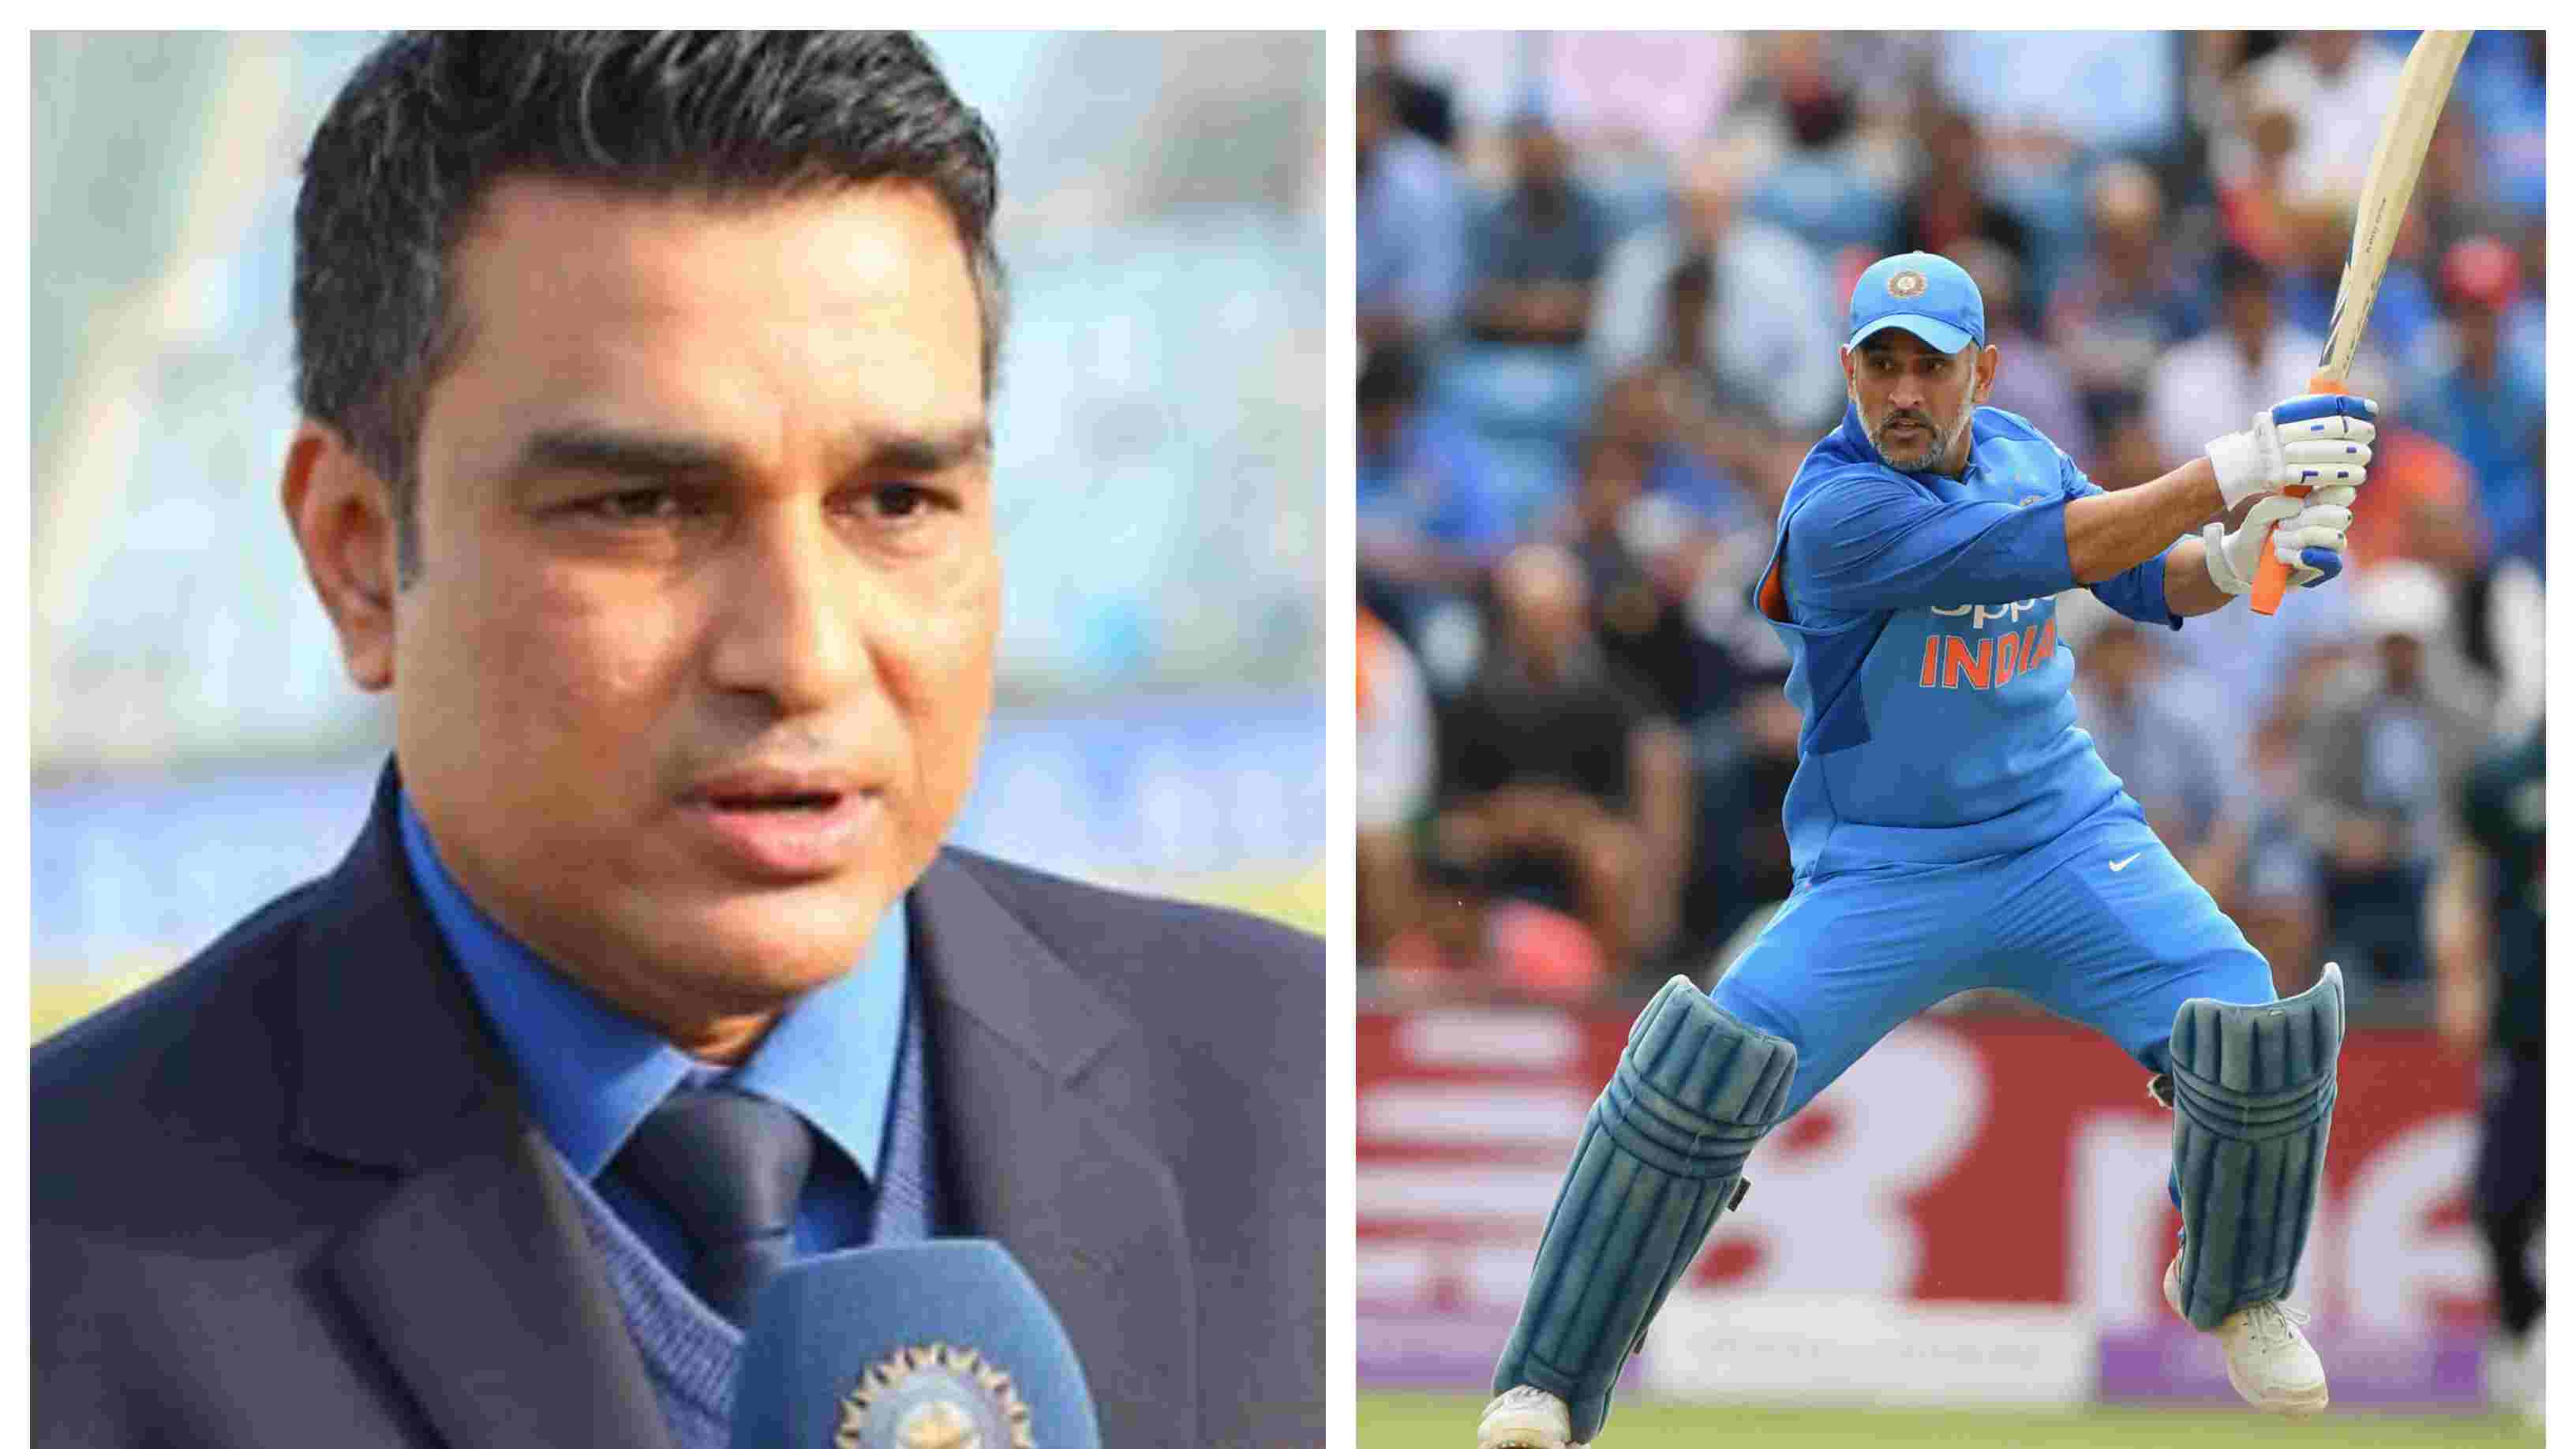 ASIA CUP 2018: India needs to lower expectations from MS Dhoni, says Sanjay Manjrekar